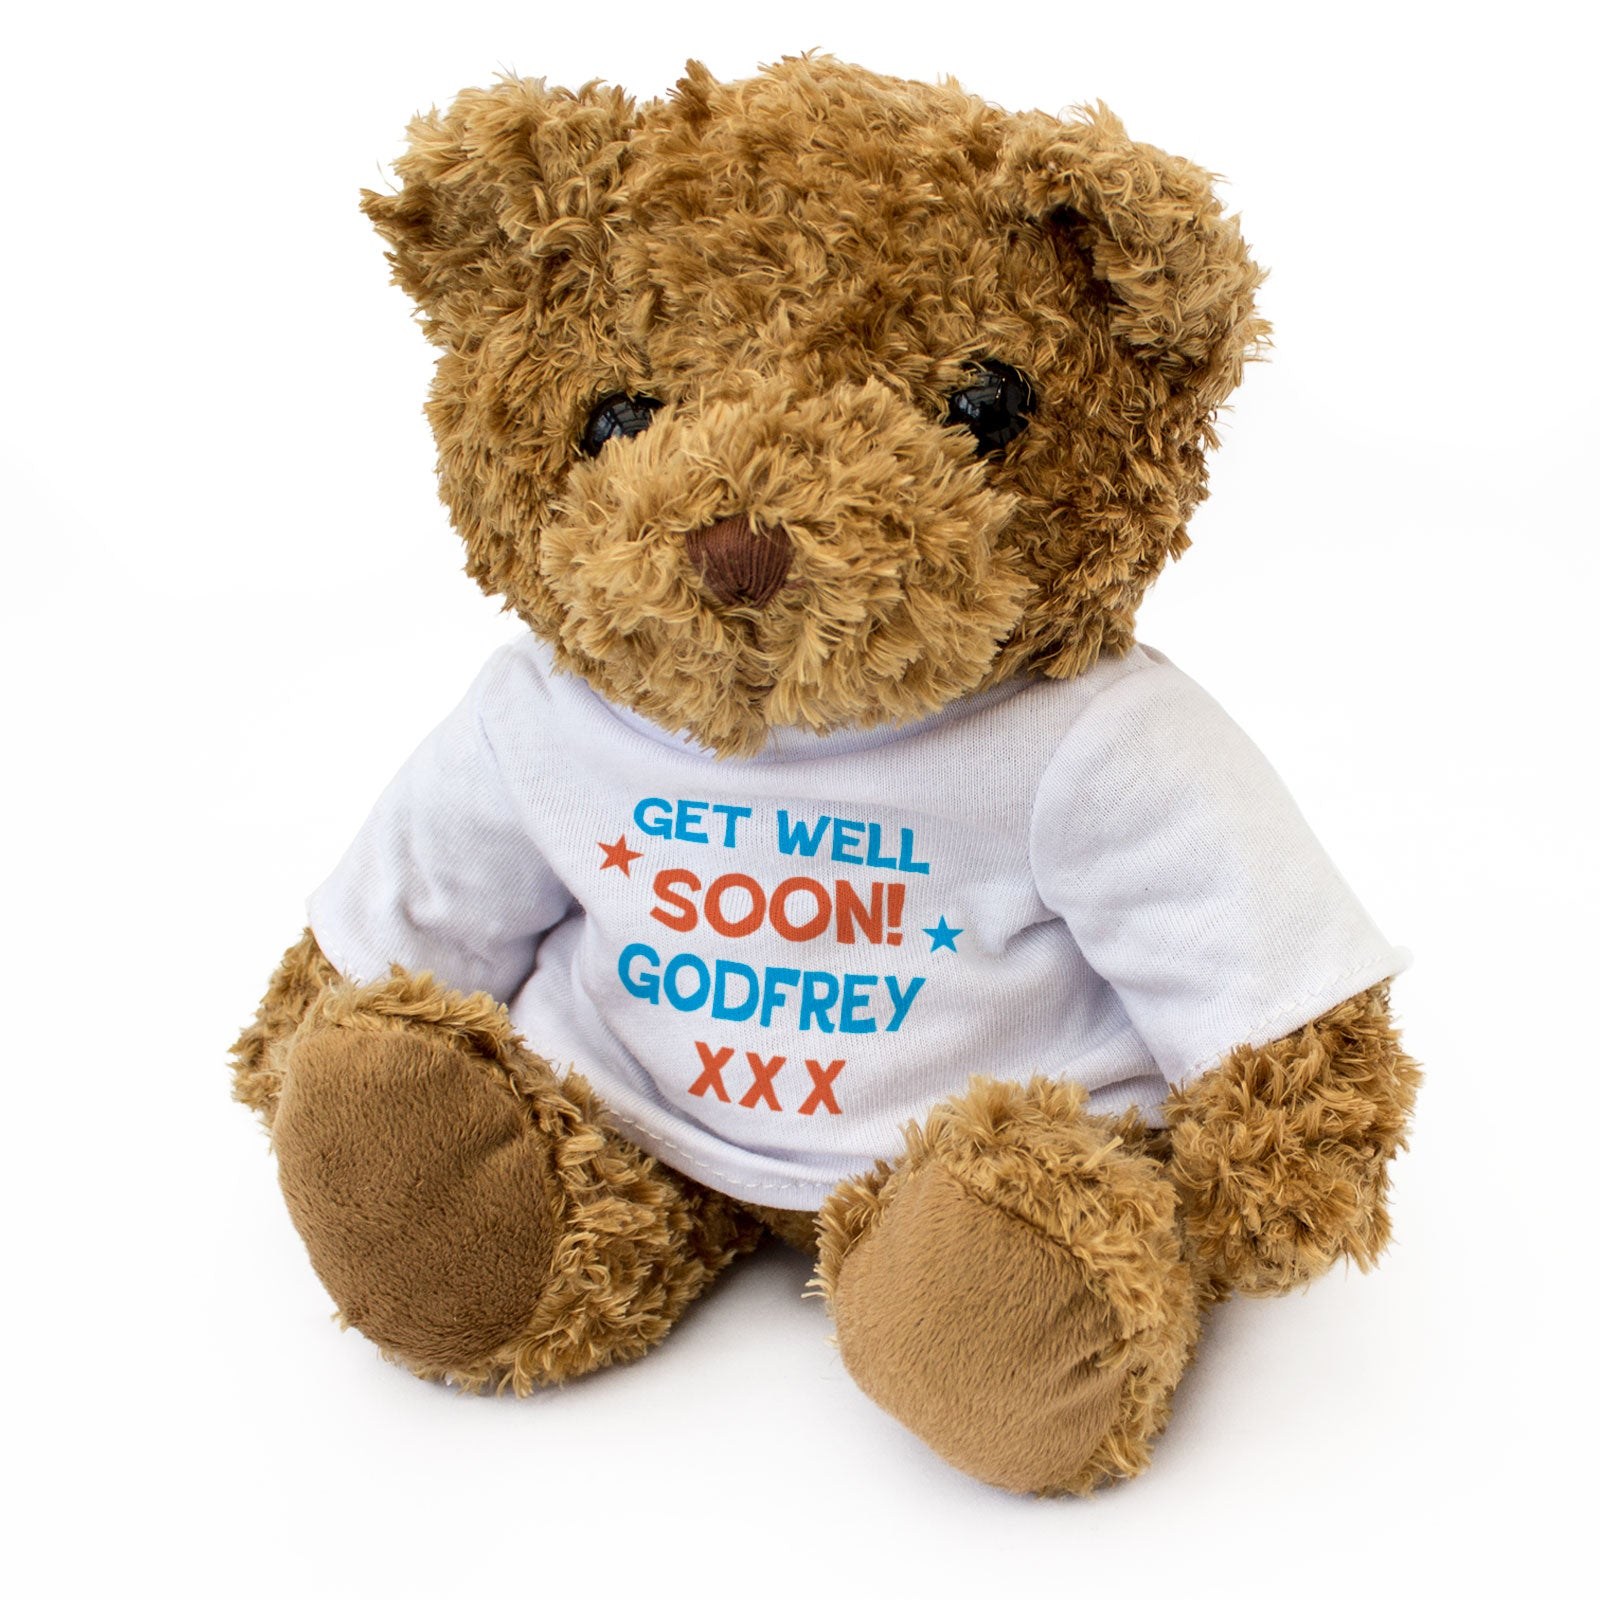 Get Well Soon Godfrey - Teddy Bear